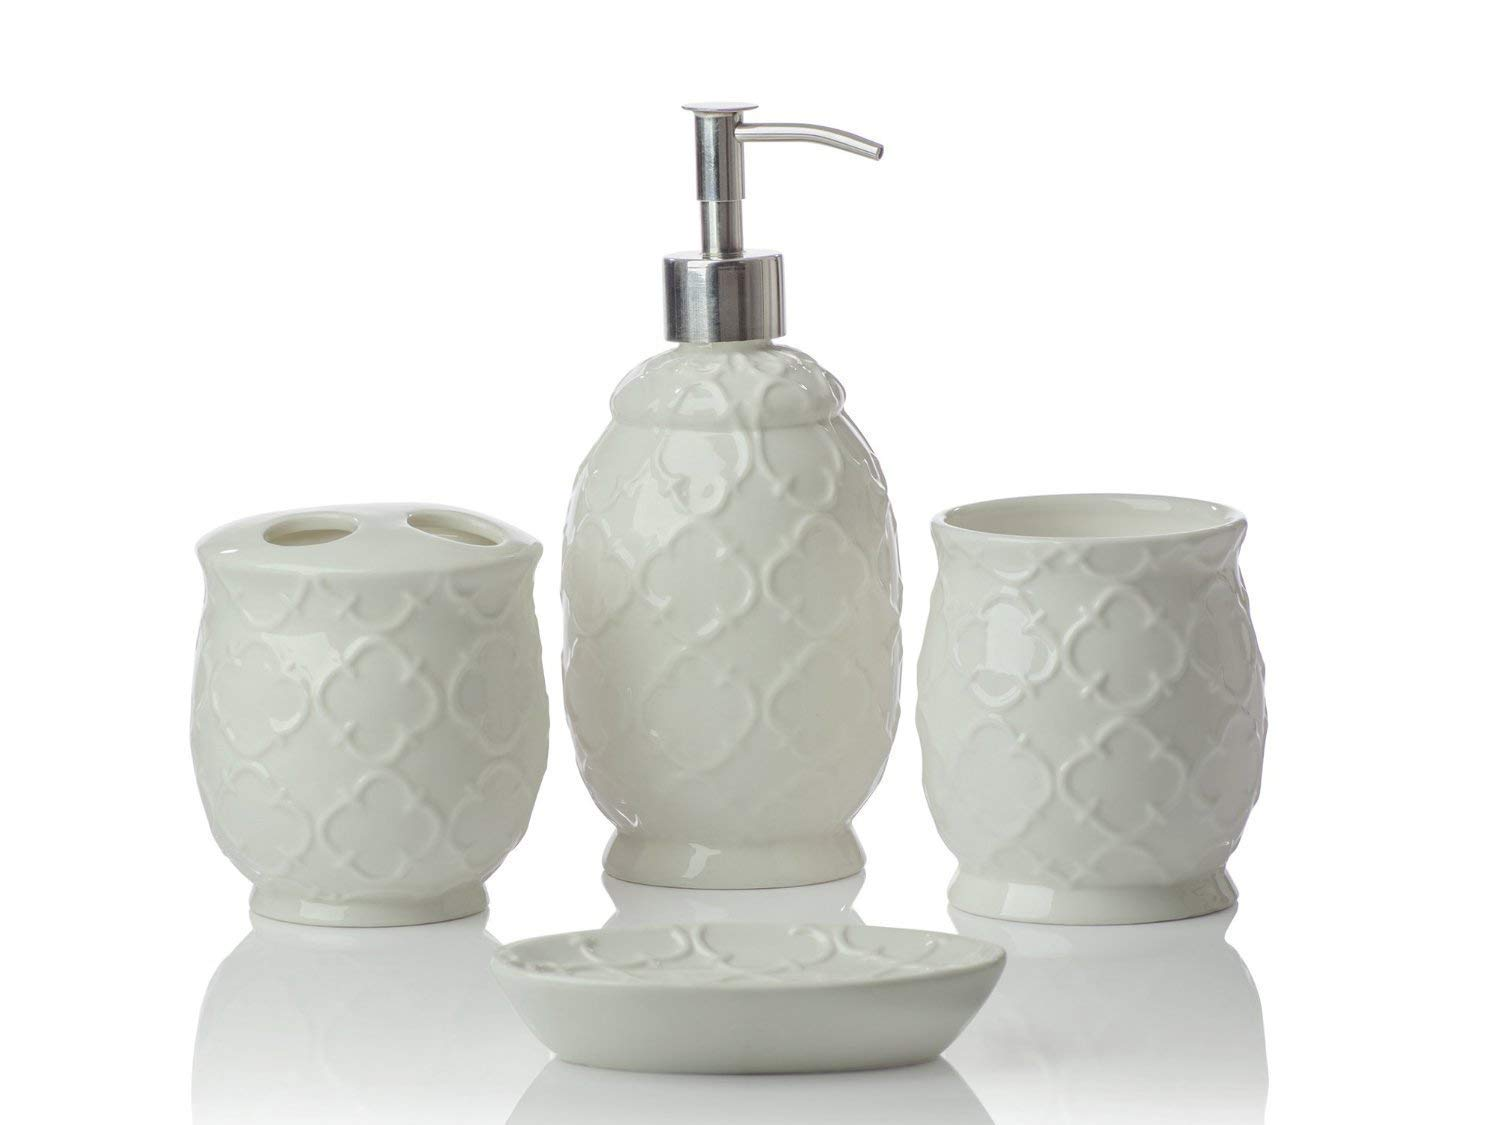 Designer 4-Piece Ceramic Bath Accessory Set | Includes Liquid Soap or Lotion Dispenser w/Toothbrush Holder, Tumbler, Soap Dish | Moroccan Trellis | Contour White